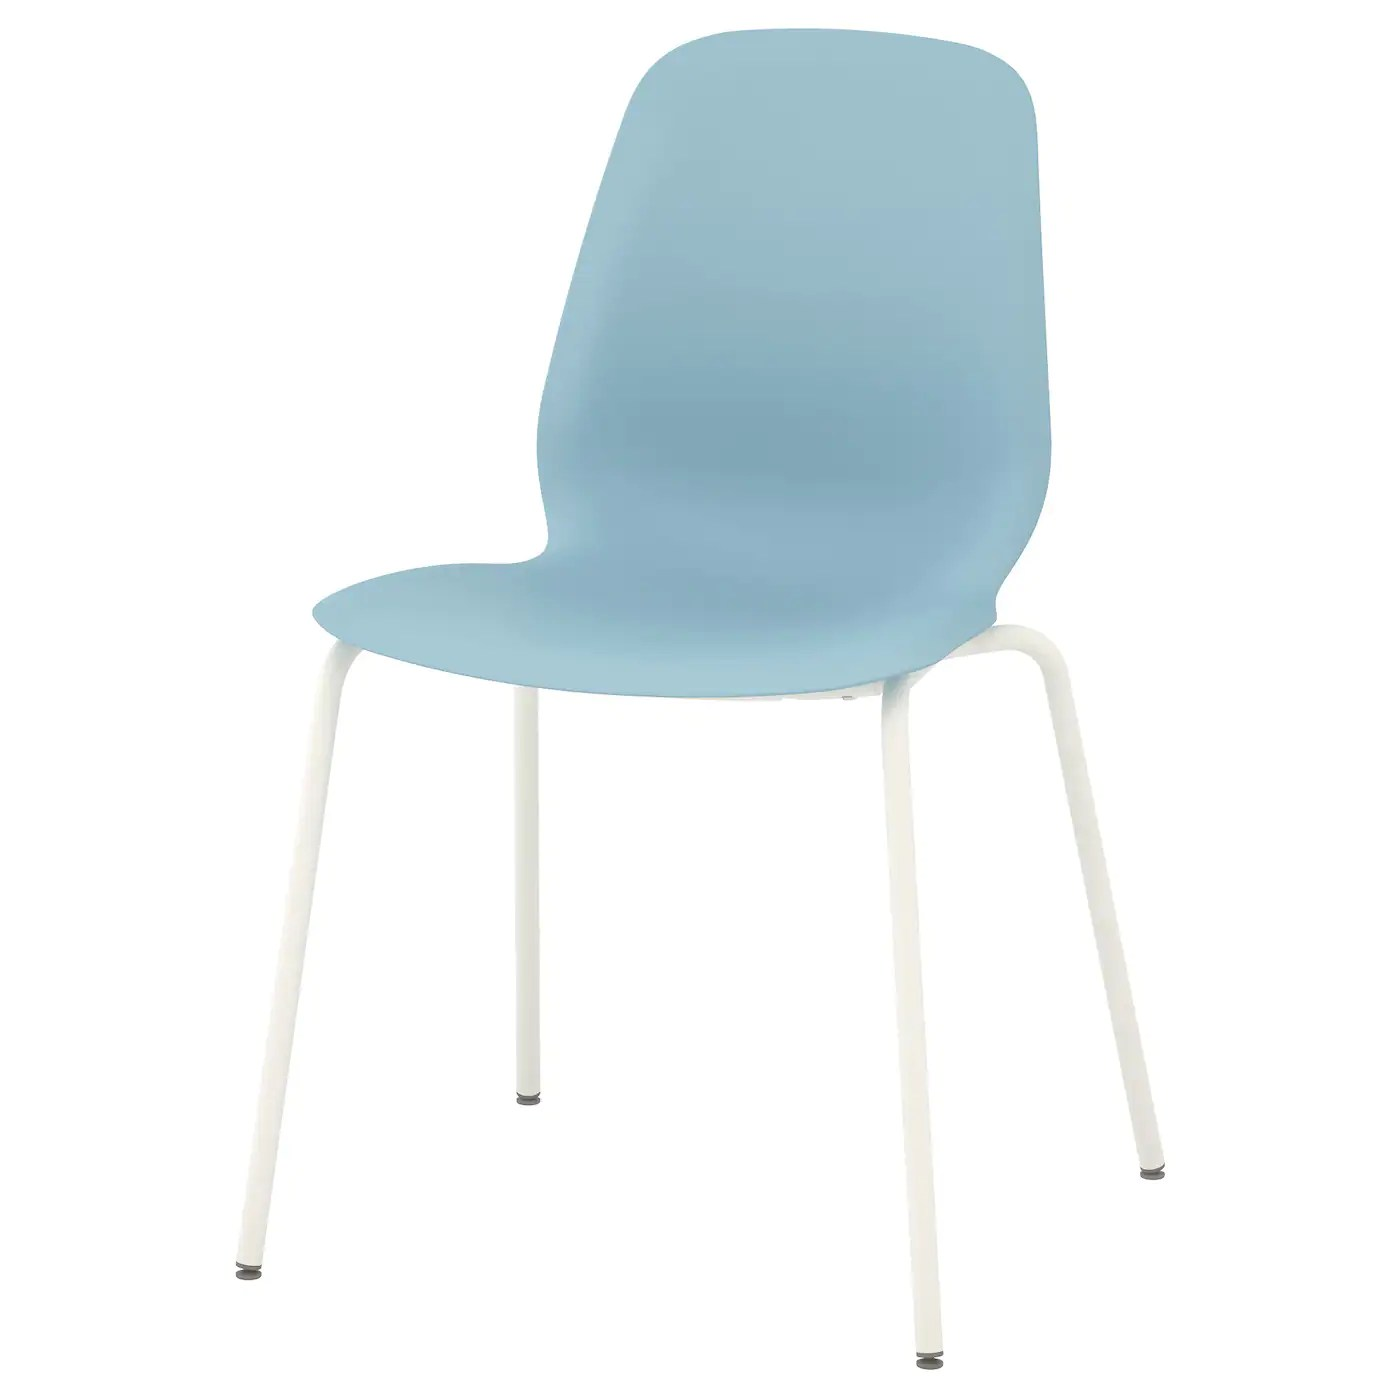 light blue desk chair bean bag kit leifarne broringe white ikea